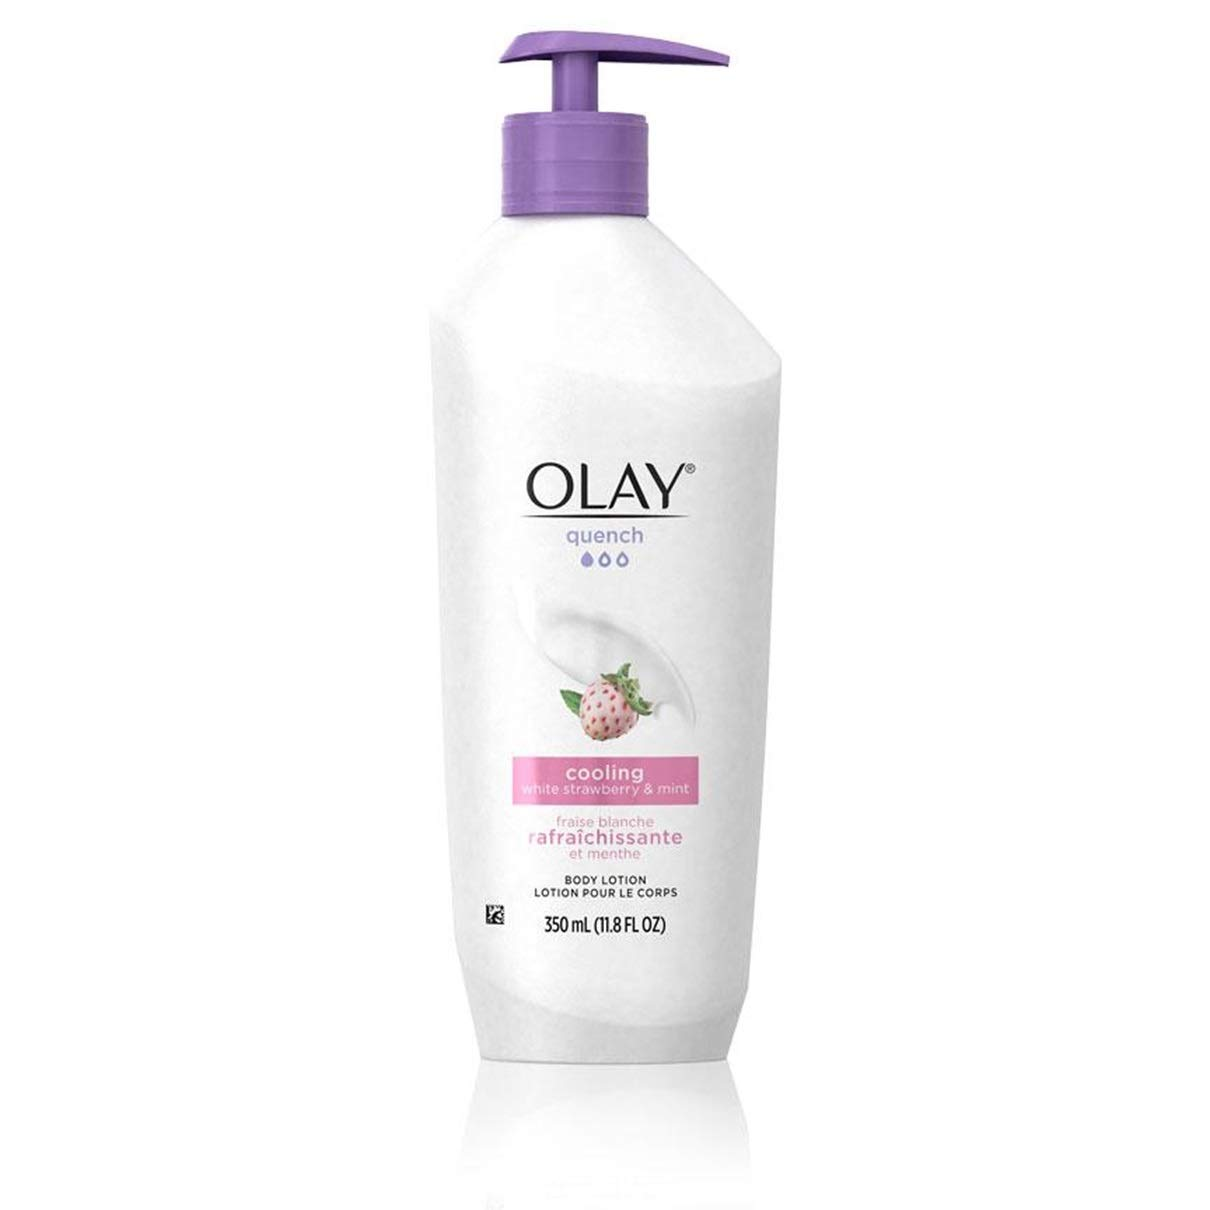 Olay Quench Cooling White Strawberry & Mint Body Lotion 11.8 oz, 2 Pack